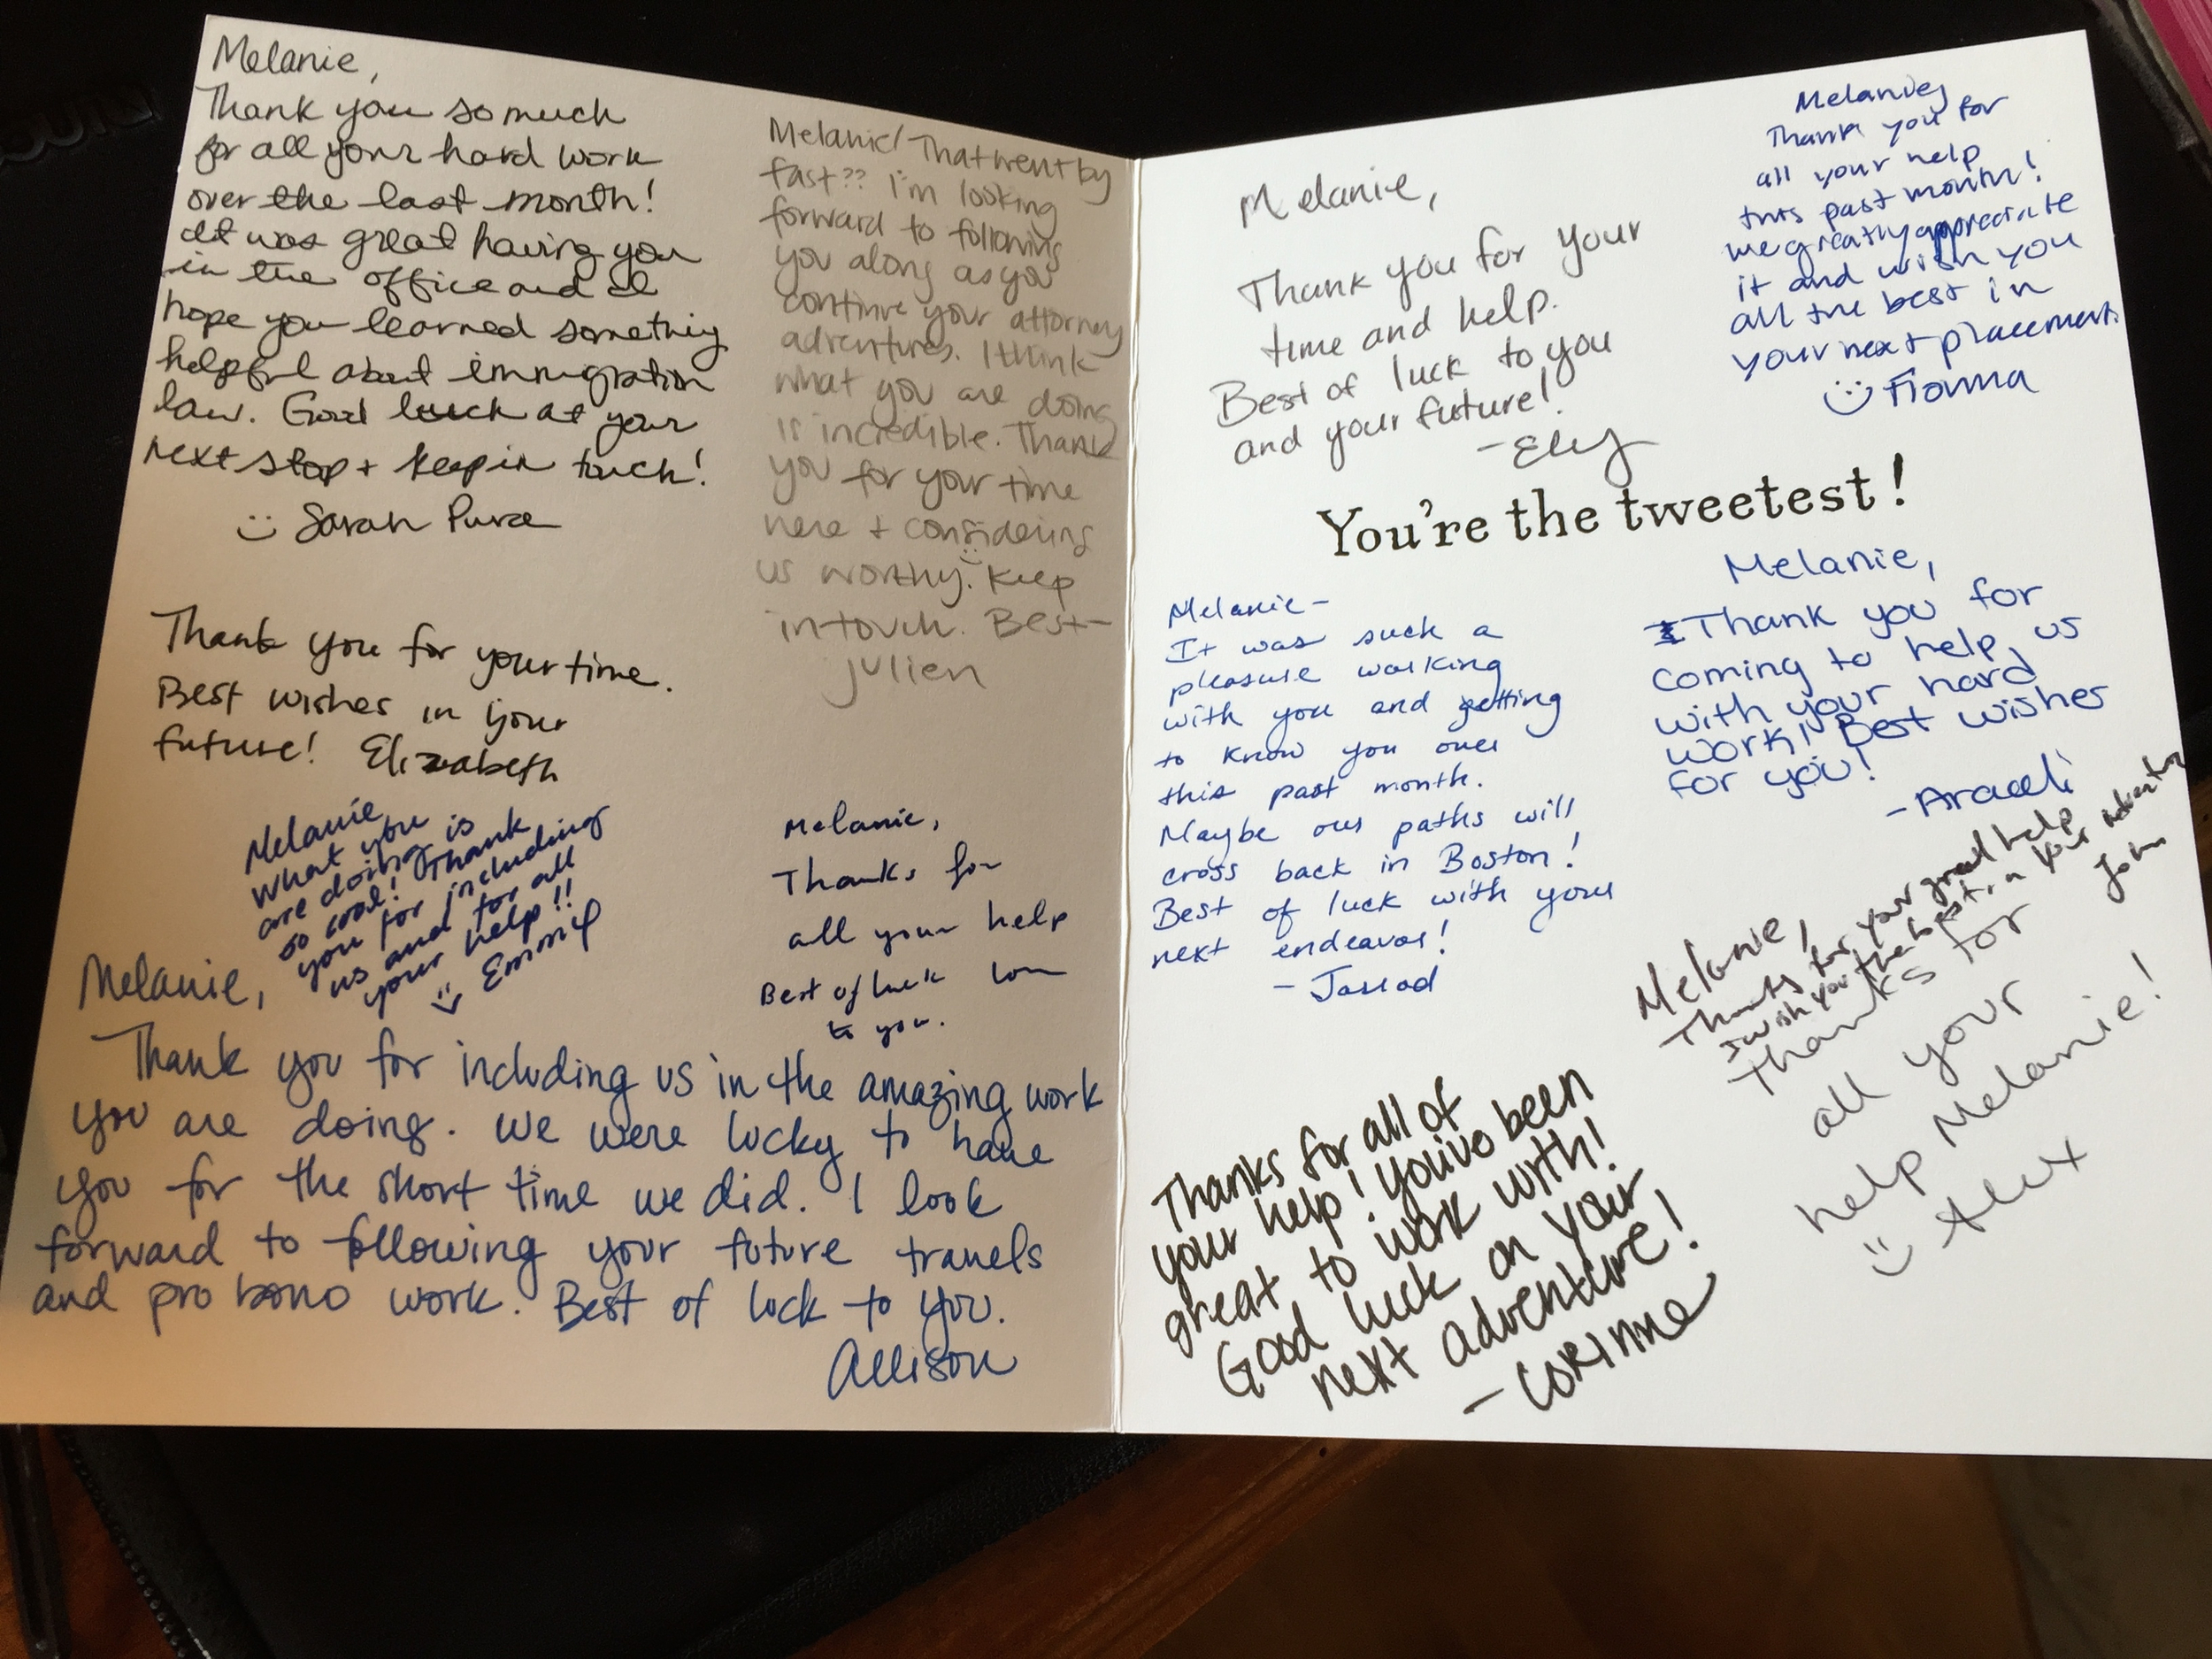 A sweet thank you card from the Immigration Legal Services team in Portland, Oregon